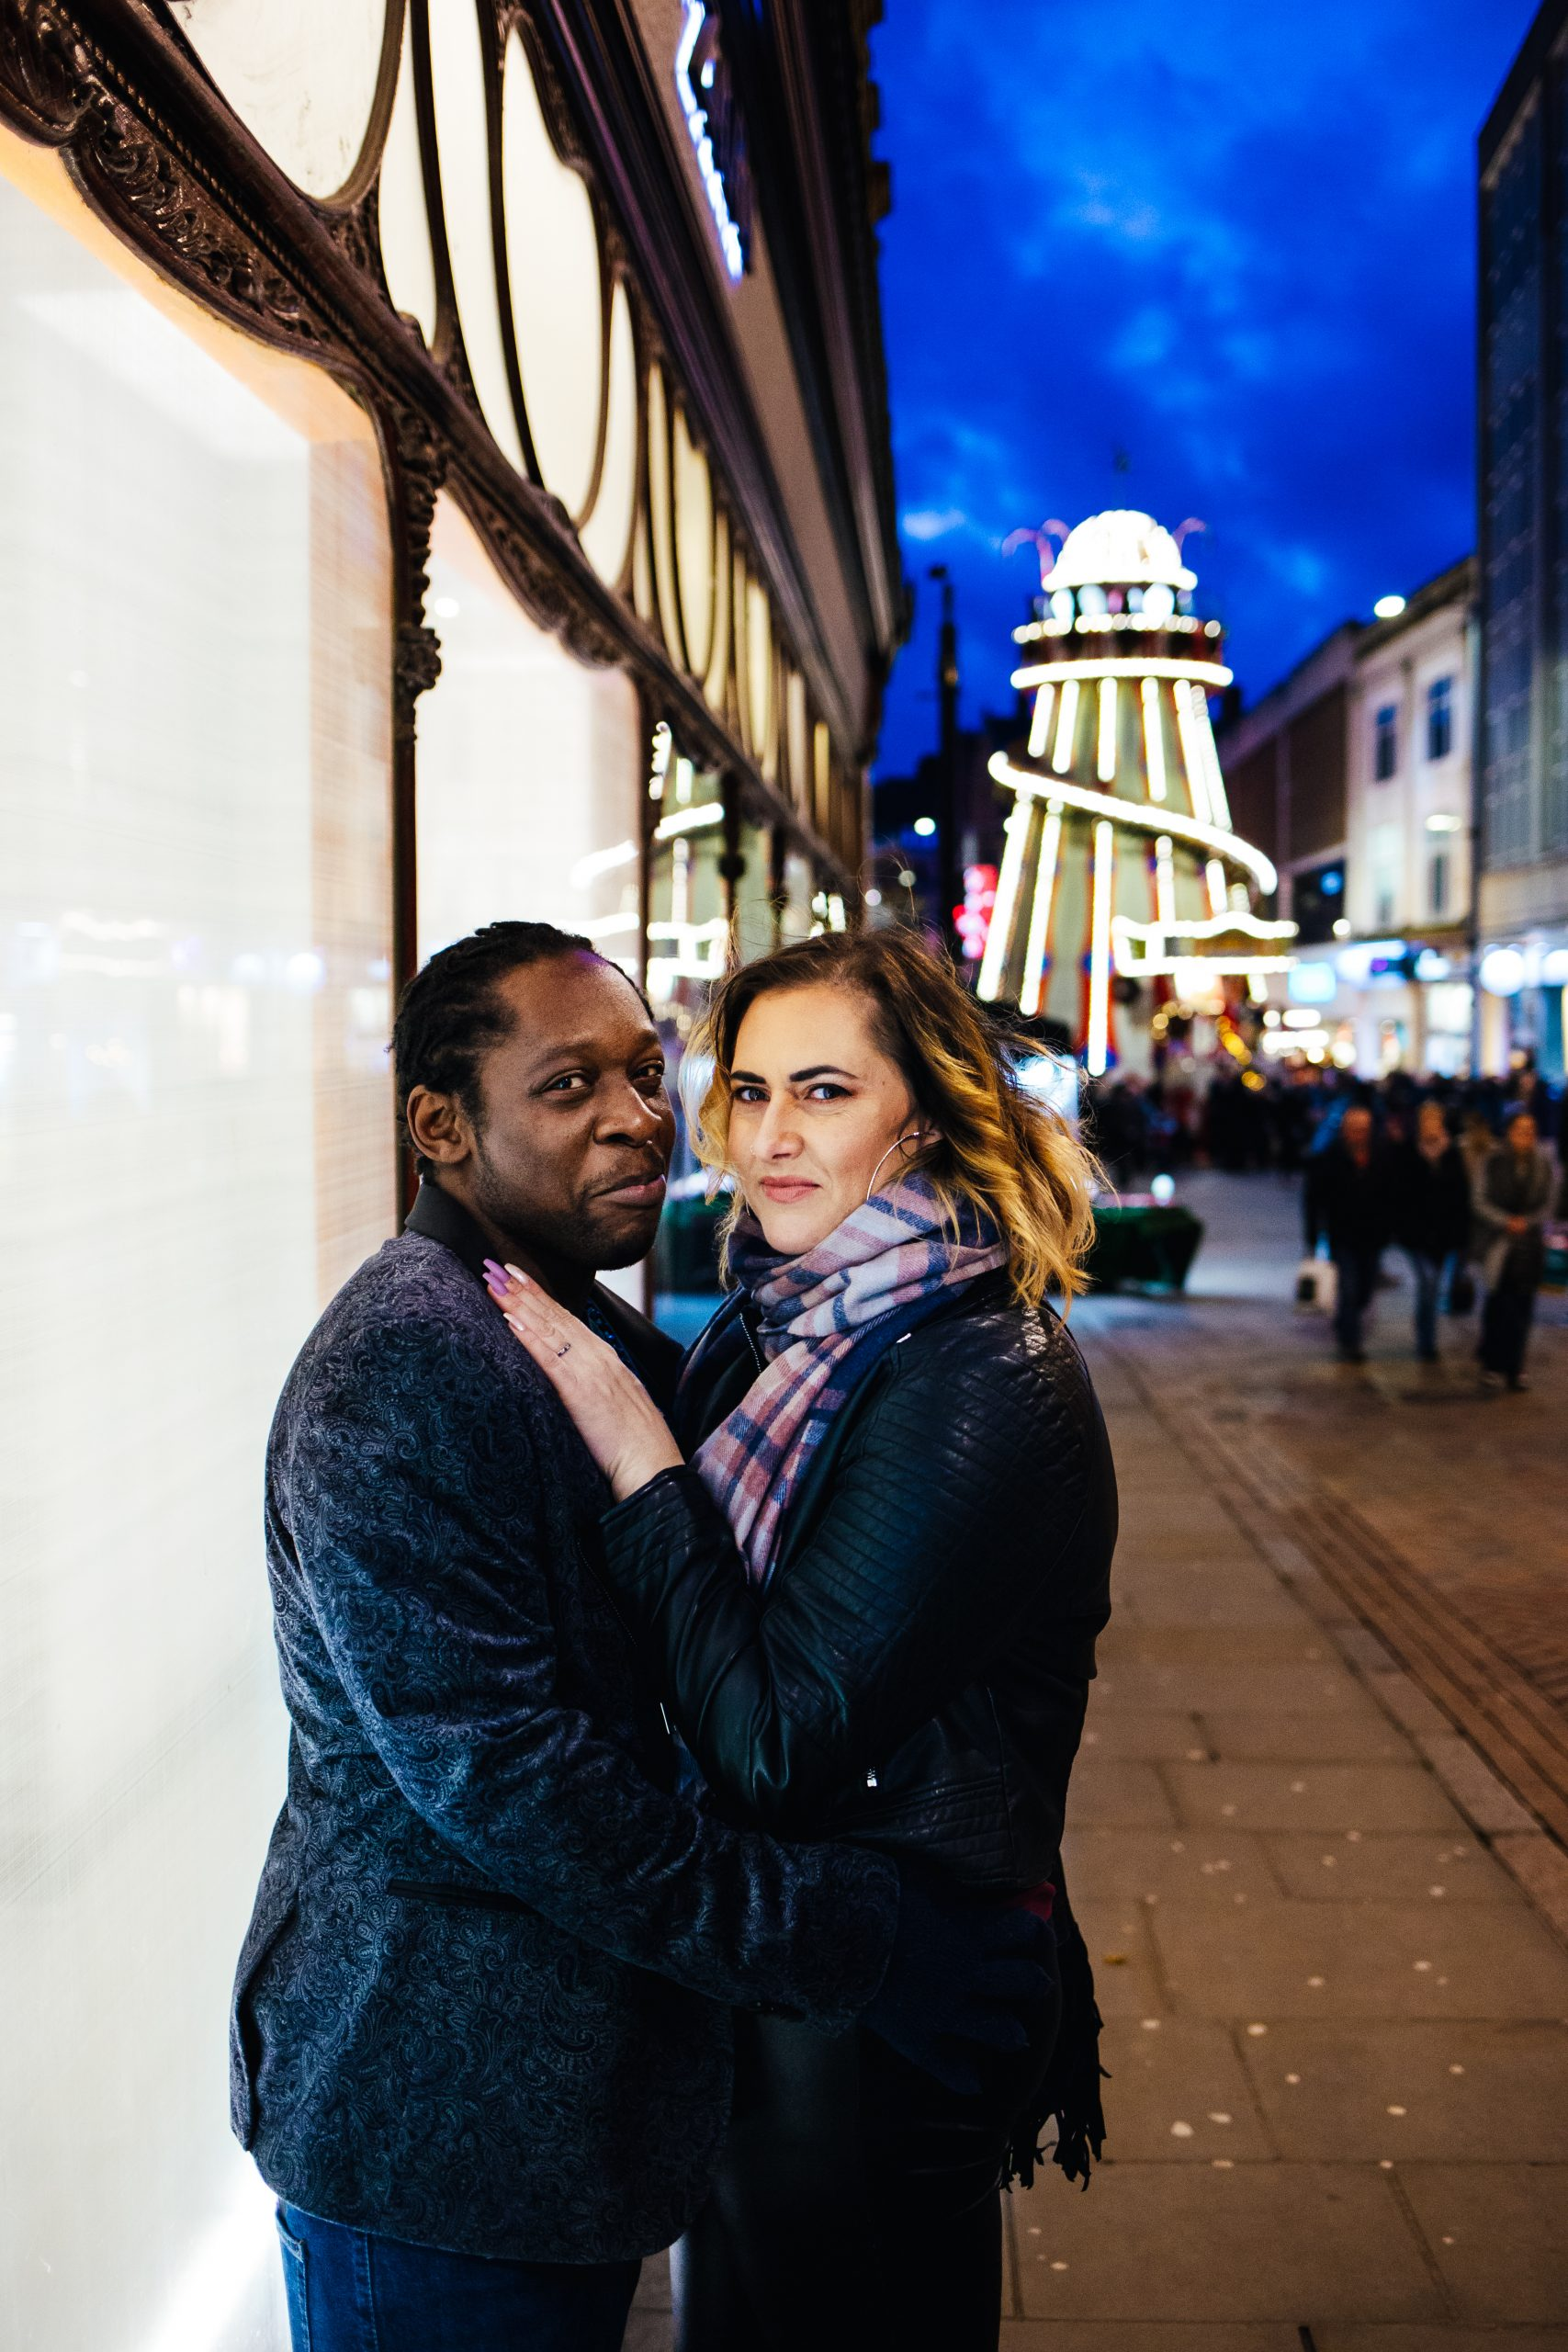 Fun Engagement Shoot - Couple lit by shop window during engagement shoot with fairground in the background